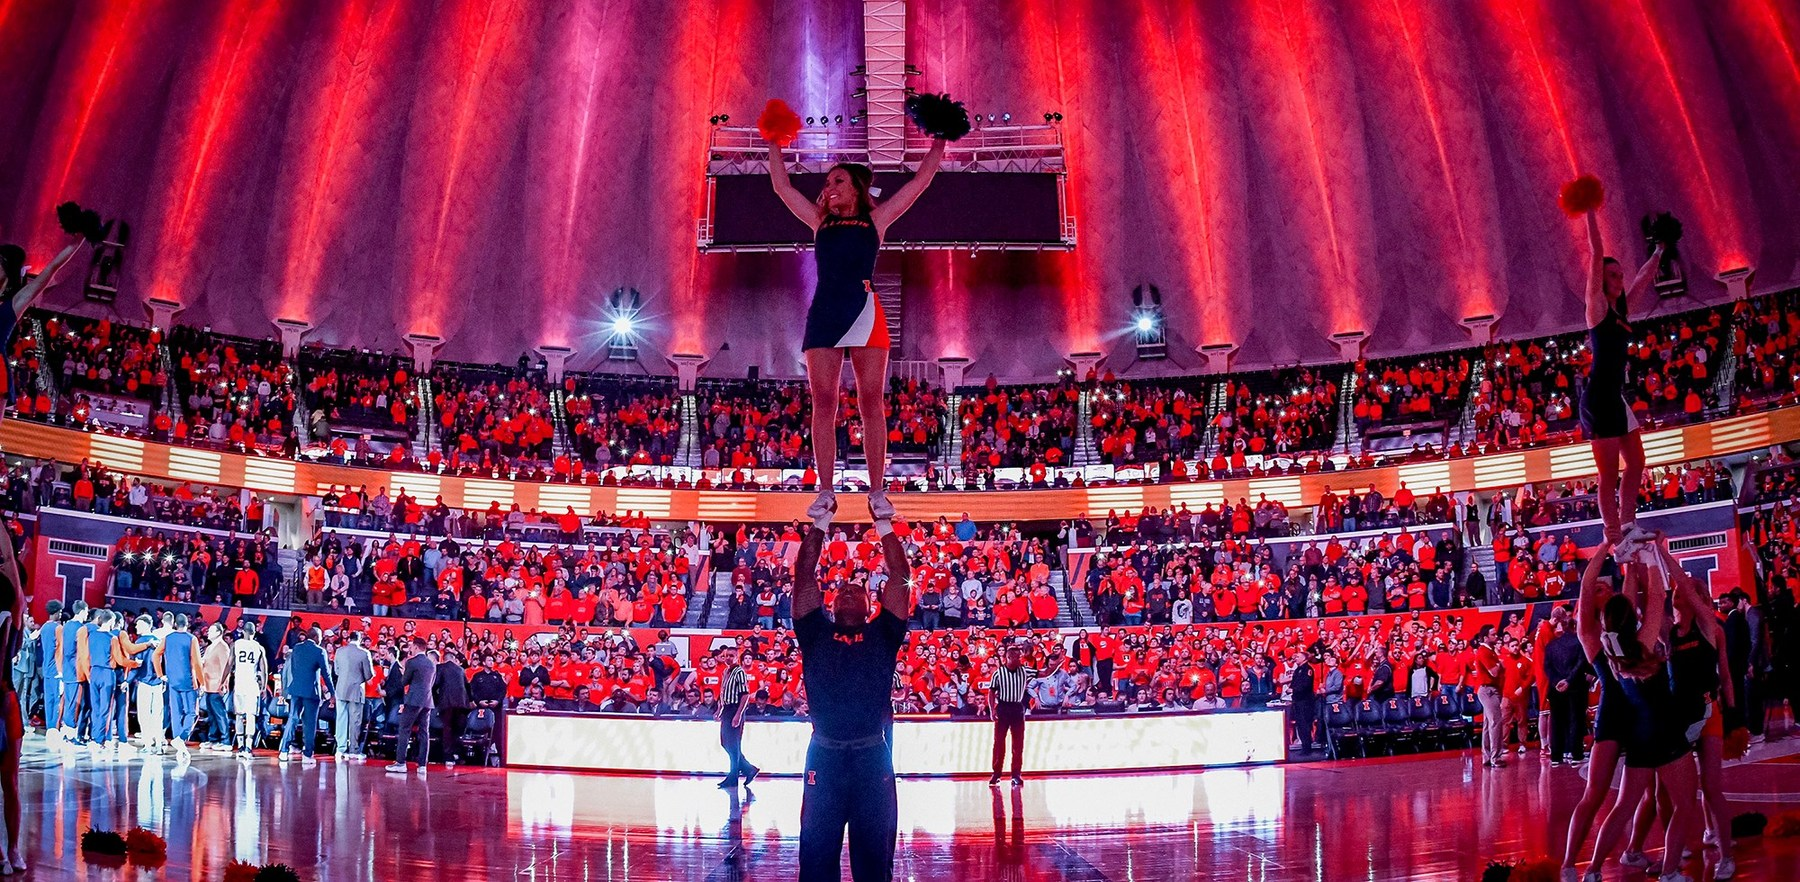 cheerleaders perform before an Illini basketball game in orange-lit State Farm Center